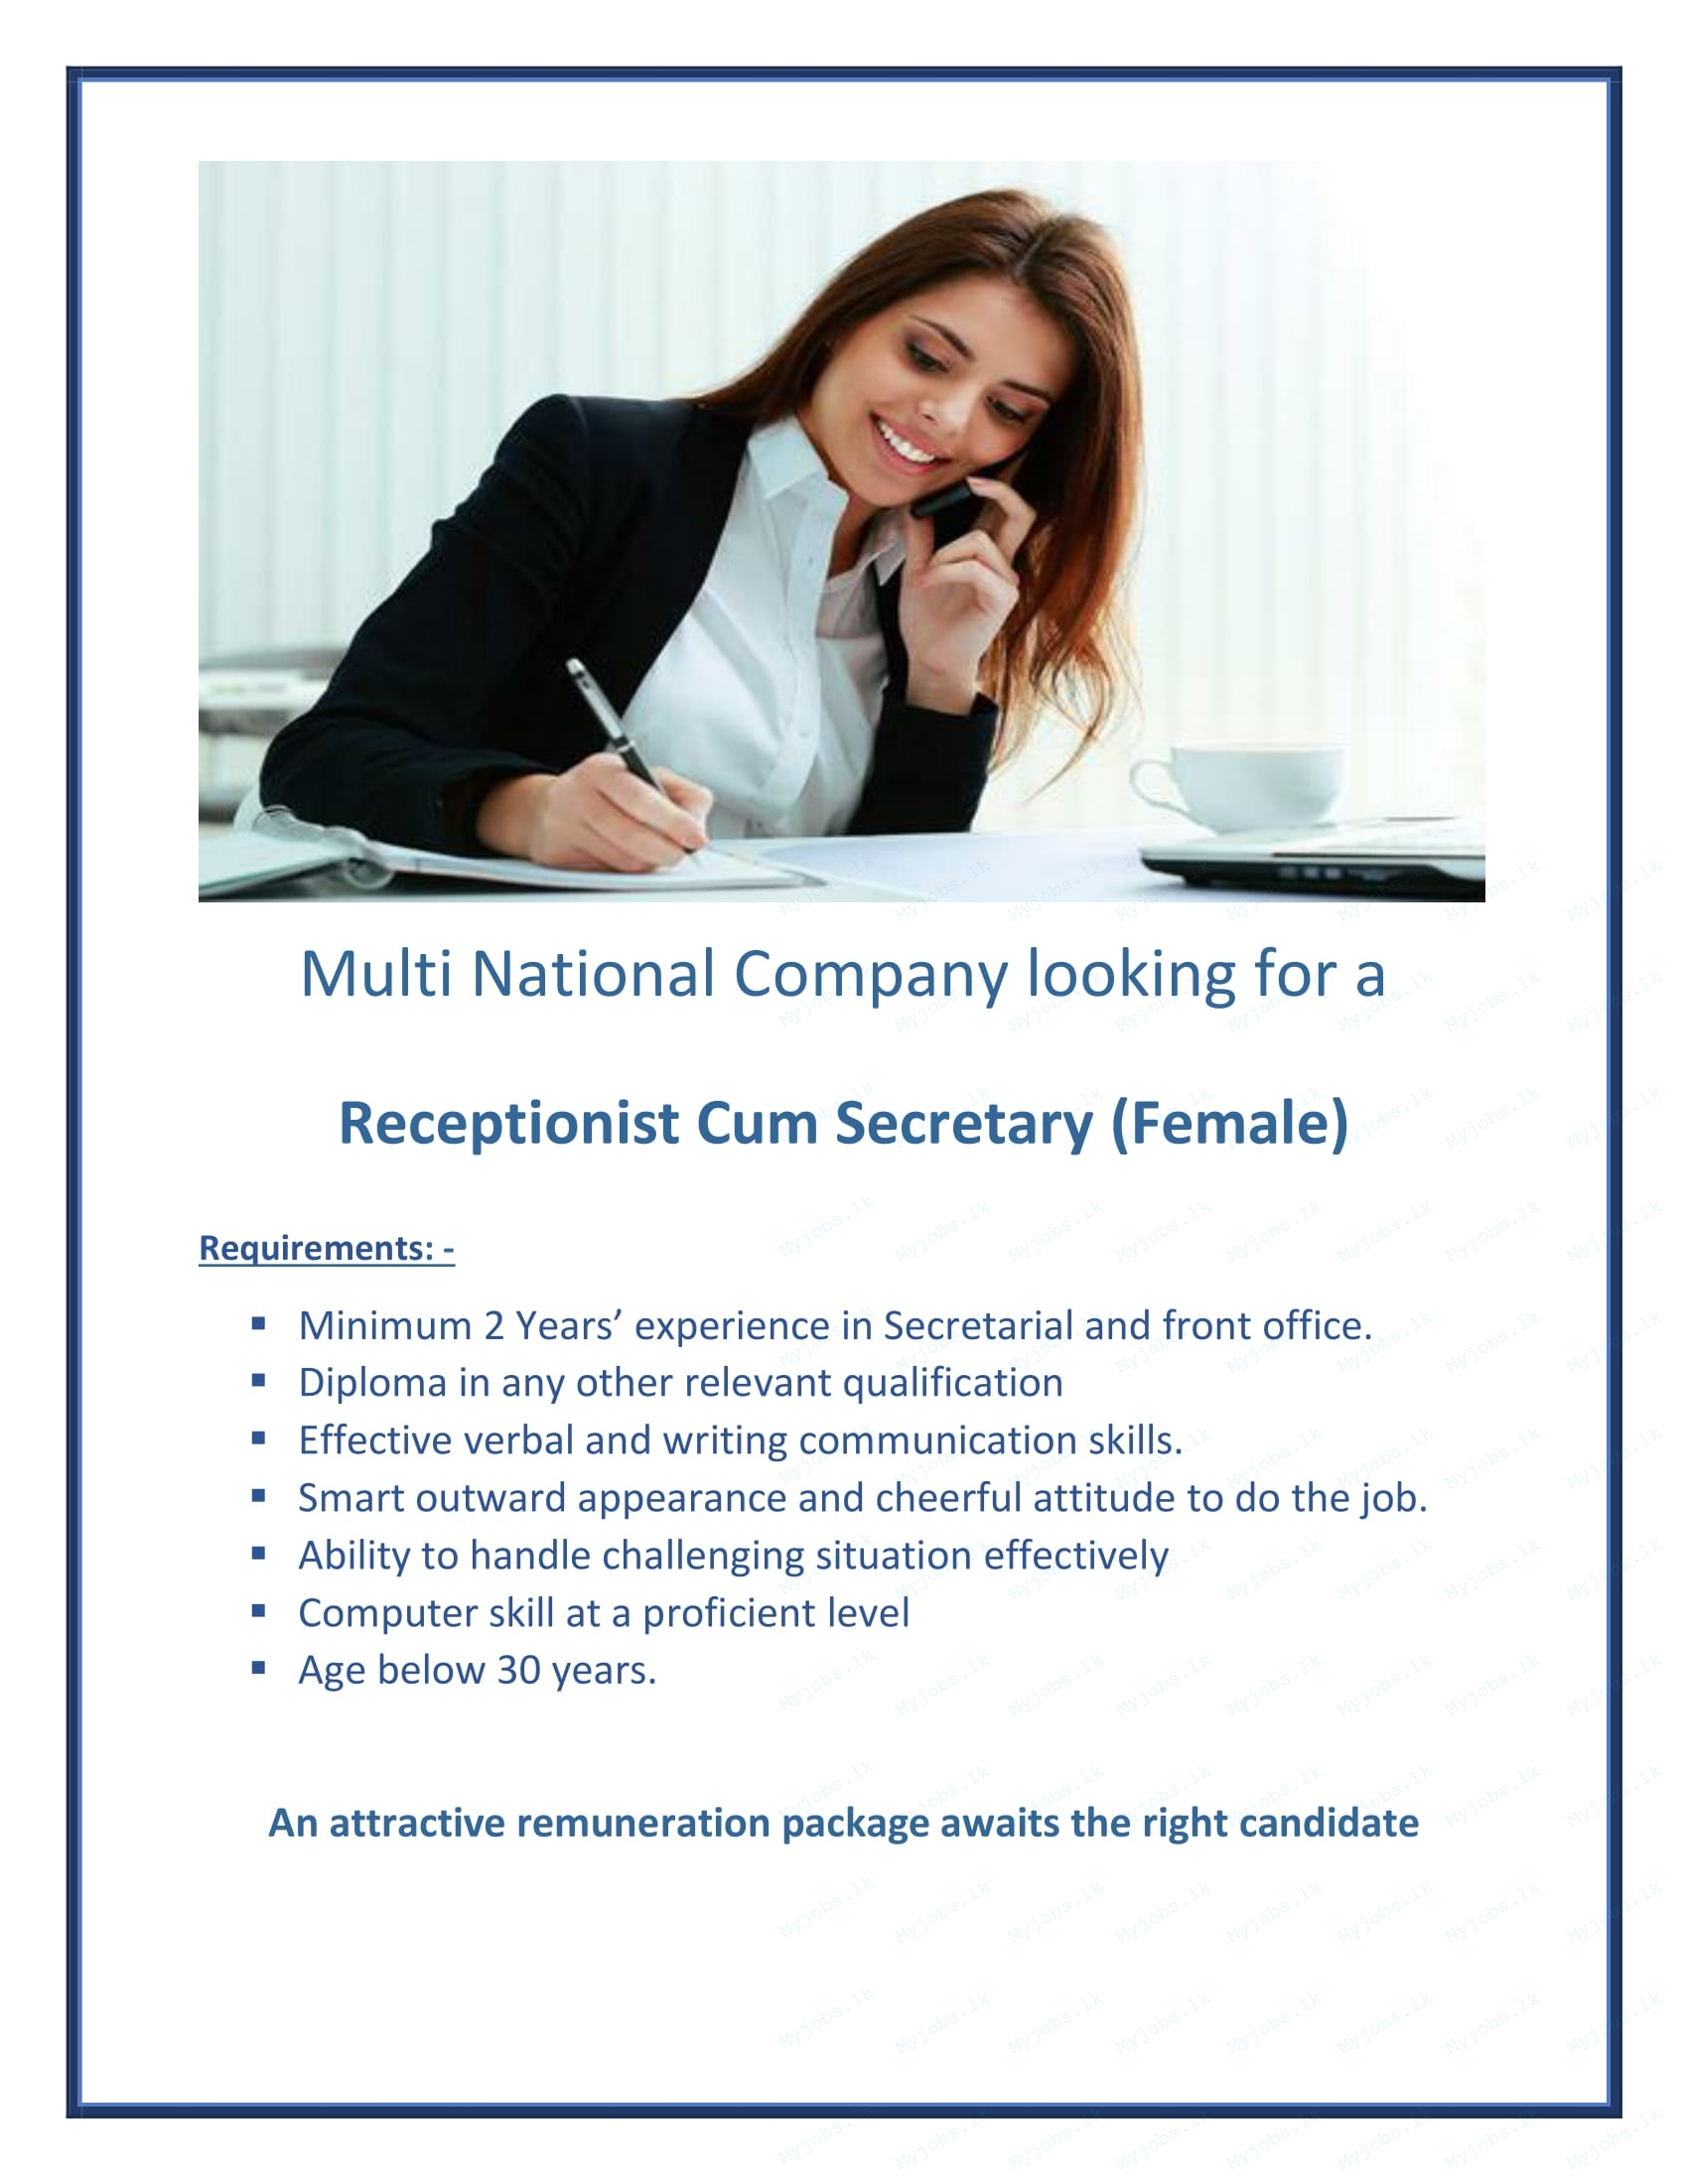 Receptionist cum Secretary (Female)